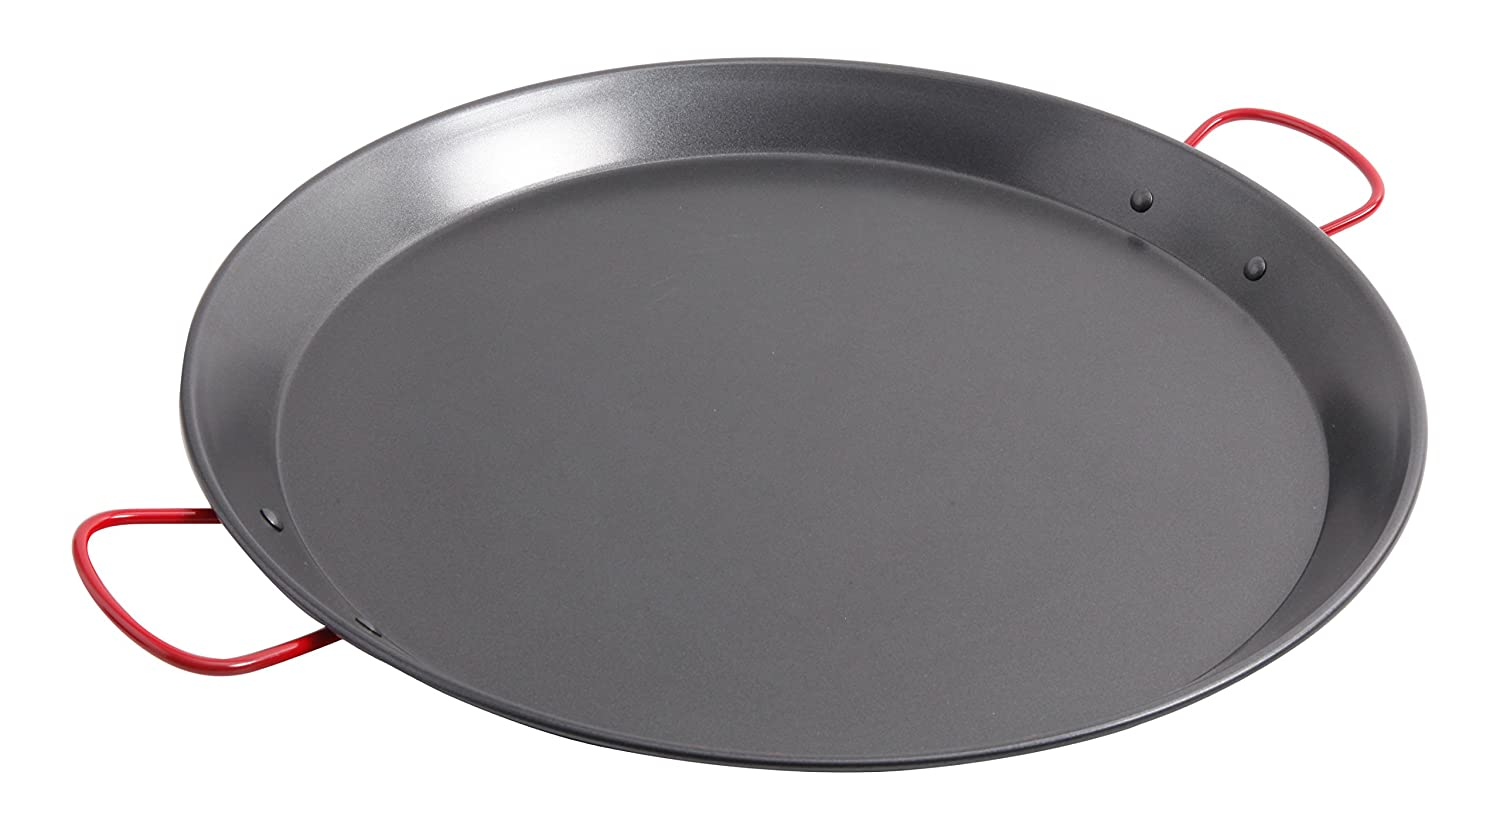 Amazon.com: Oster Cocina 111894.01 Corrales Paella Round Carbon Steel Pan with Stainless Steel Handles, Red: Kitchen & Dining